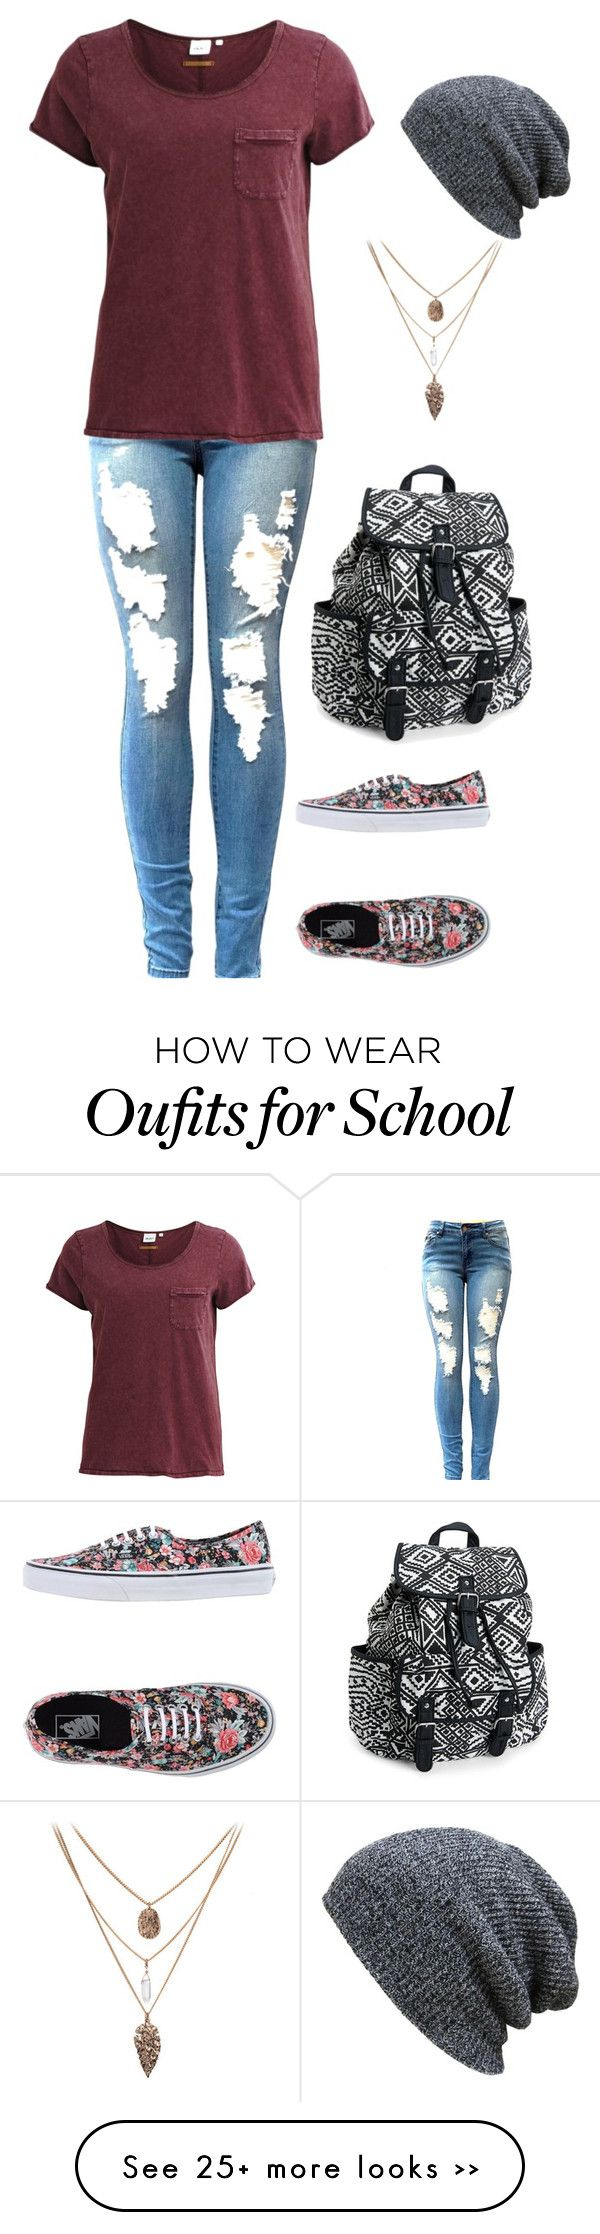 """""""Ugh, School"""" by lizzie-cockerham on Polyvore featuring Object Collectors Item, Vans and Aéropostale"""